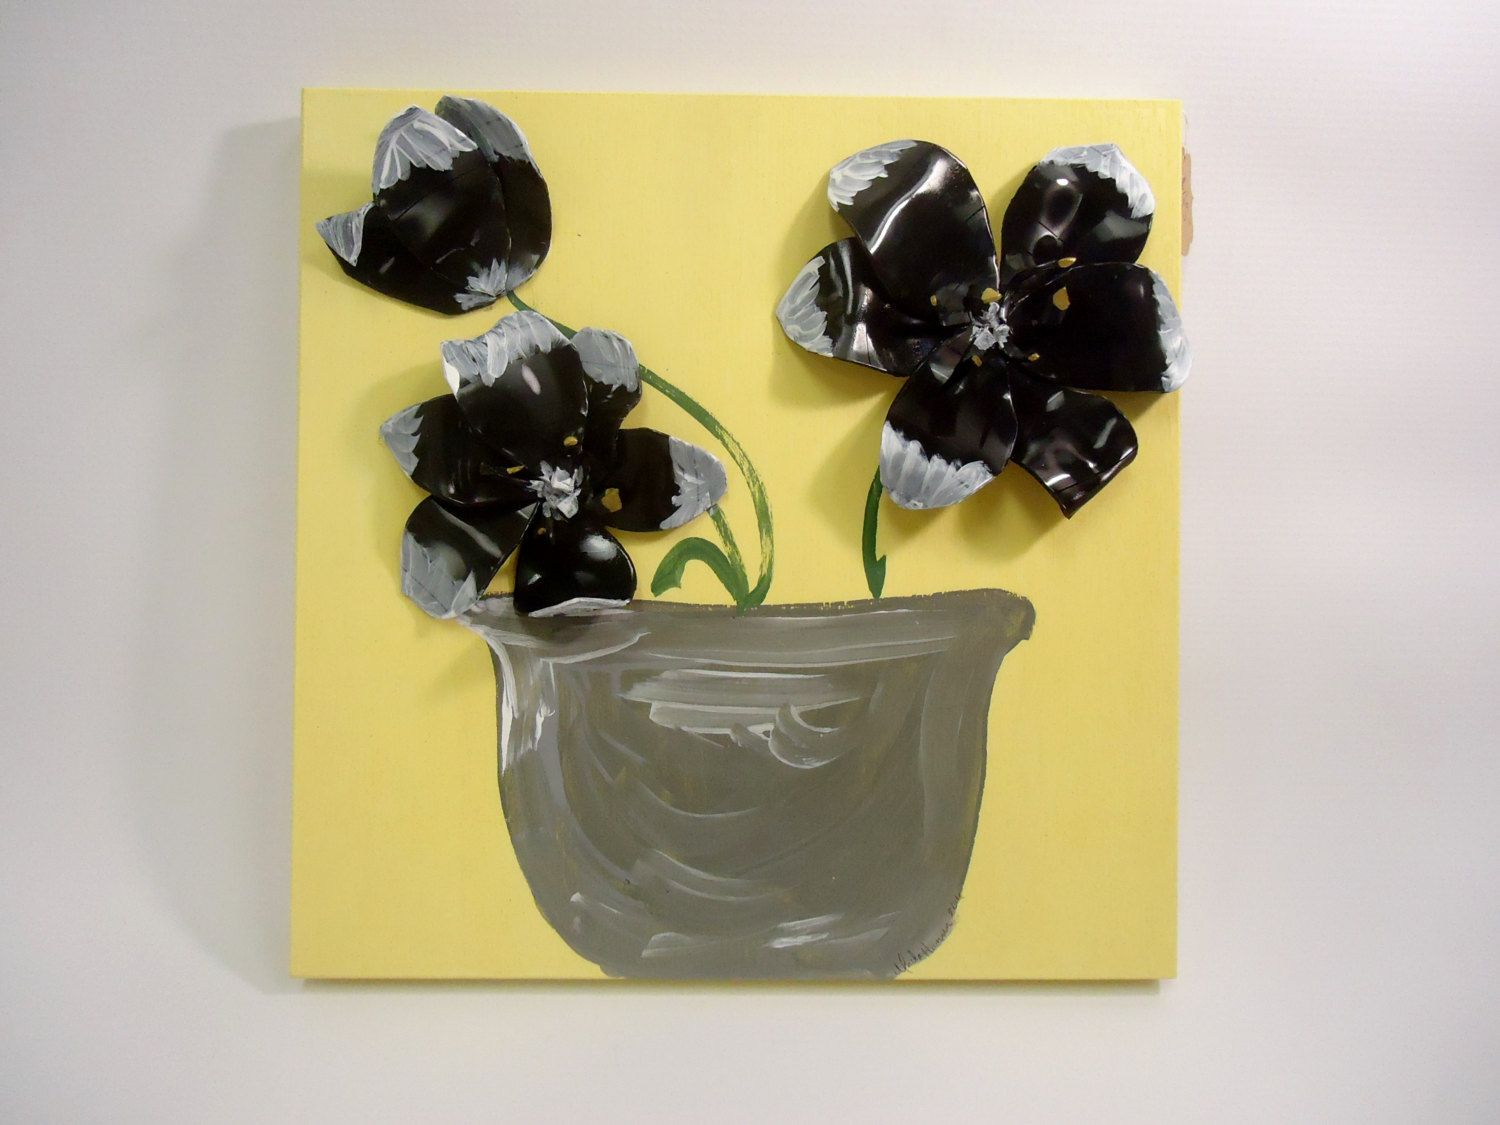 Flower Wall Art - Vinyl Records Upcycled - Lily Flowers Painting ...